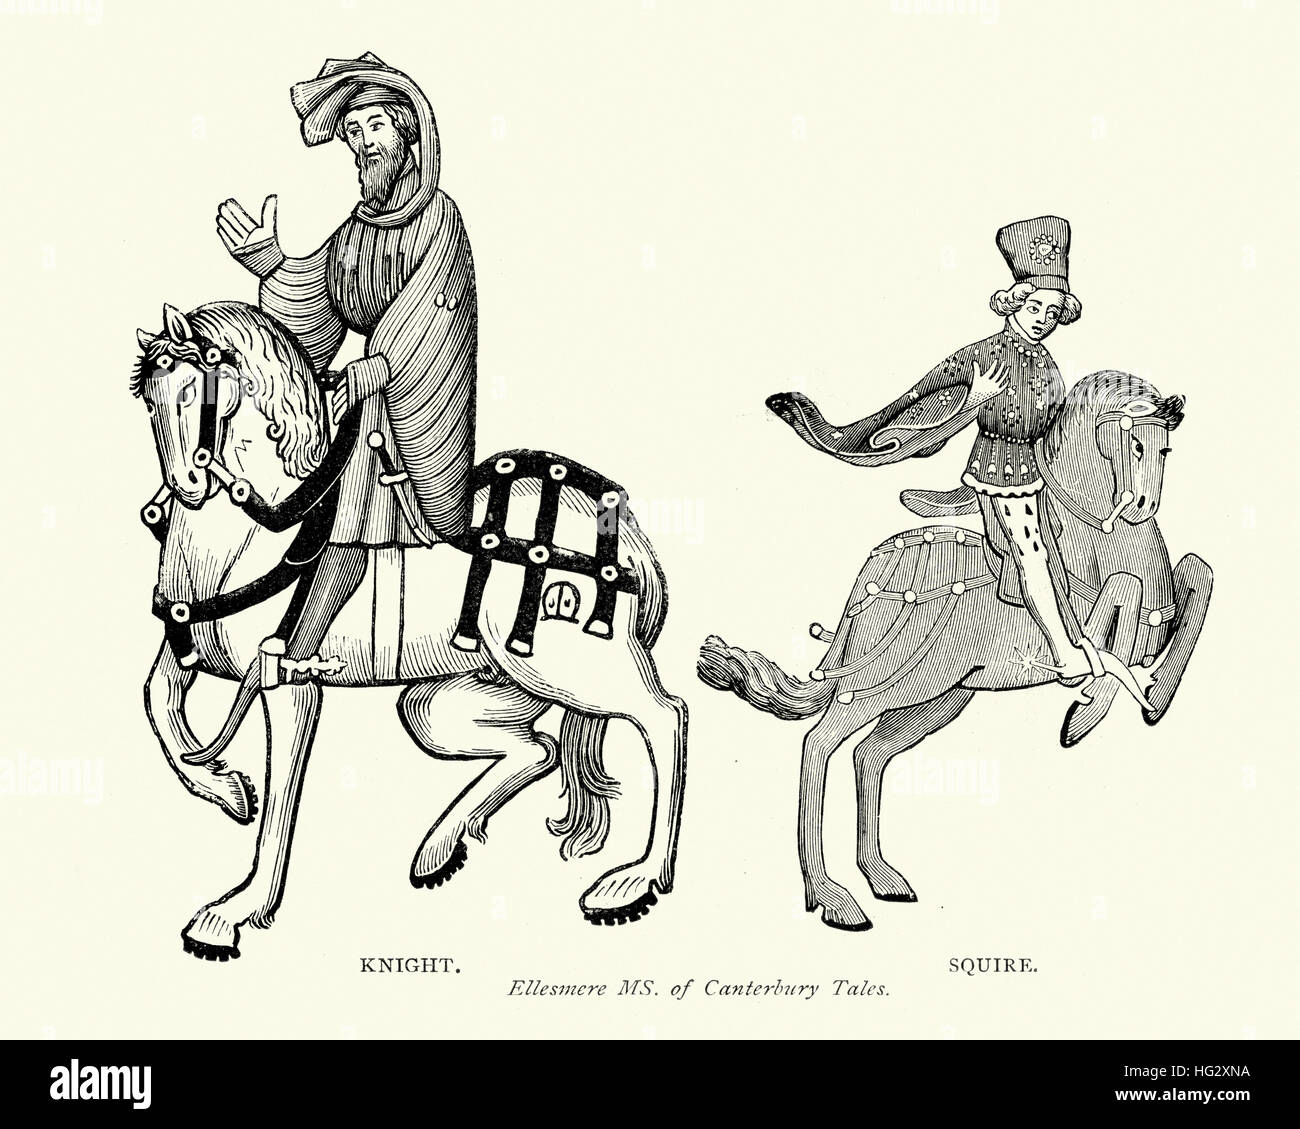 chauser shows dislike characters canterbury tales Learn about the characters in geoffrey chaucer's collection of stories the canterbury tales with course hero's video study guide download the free study.